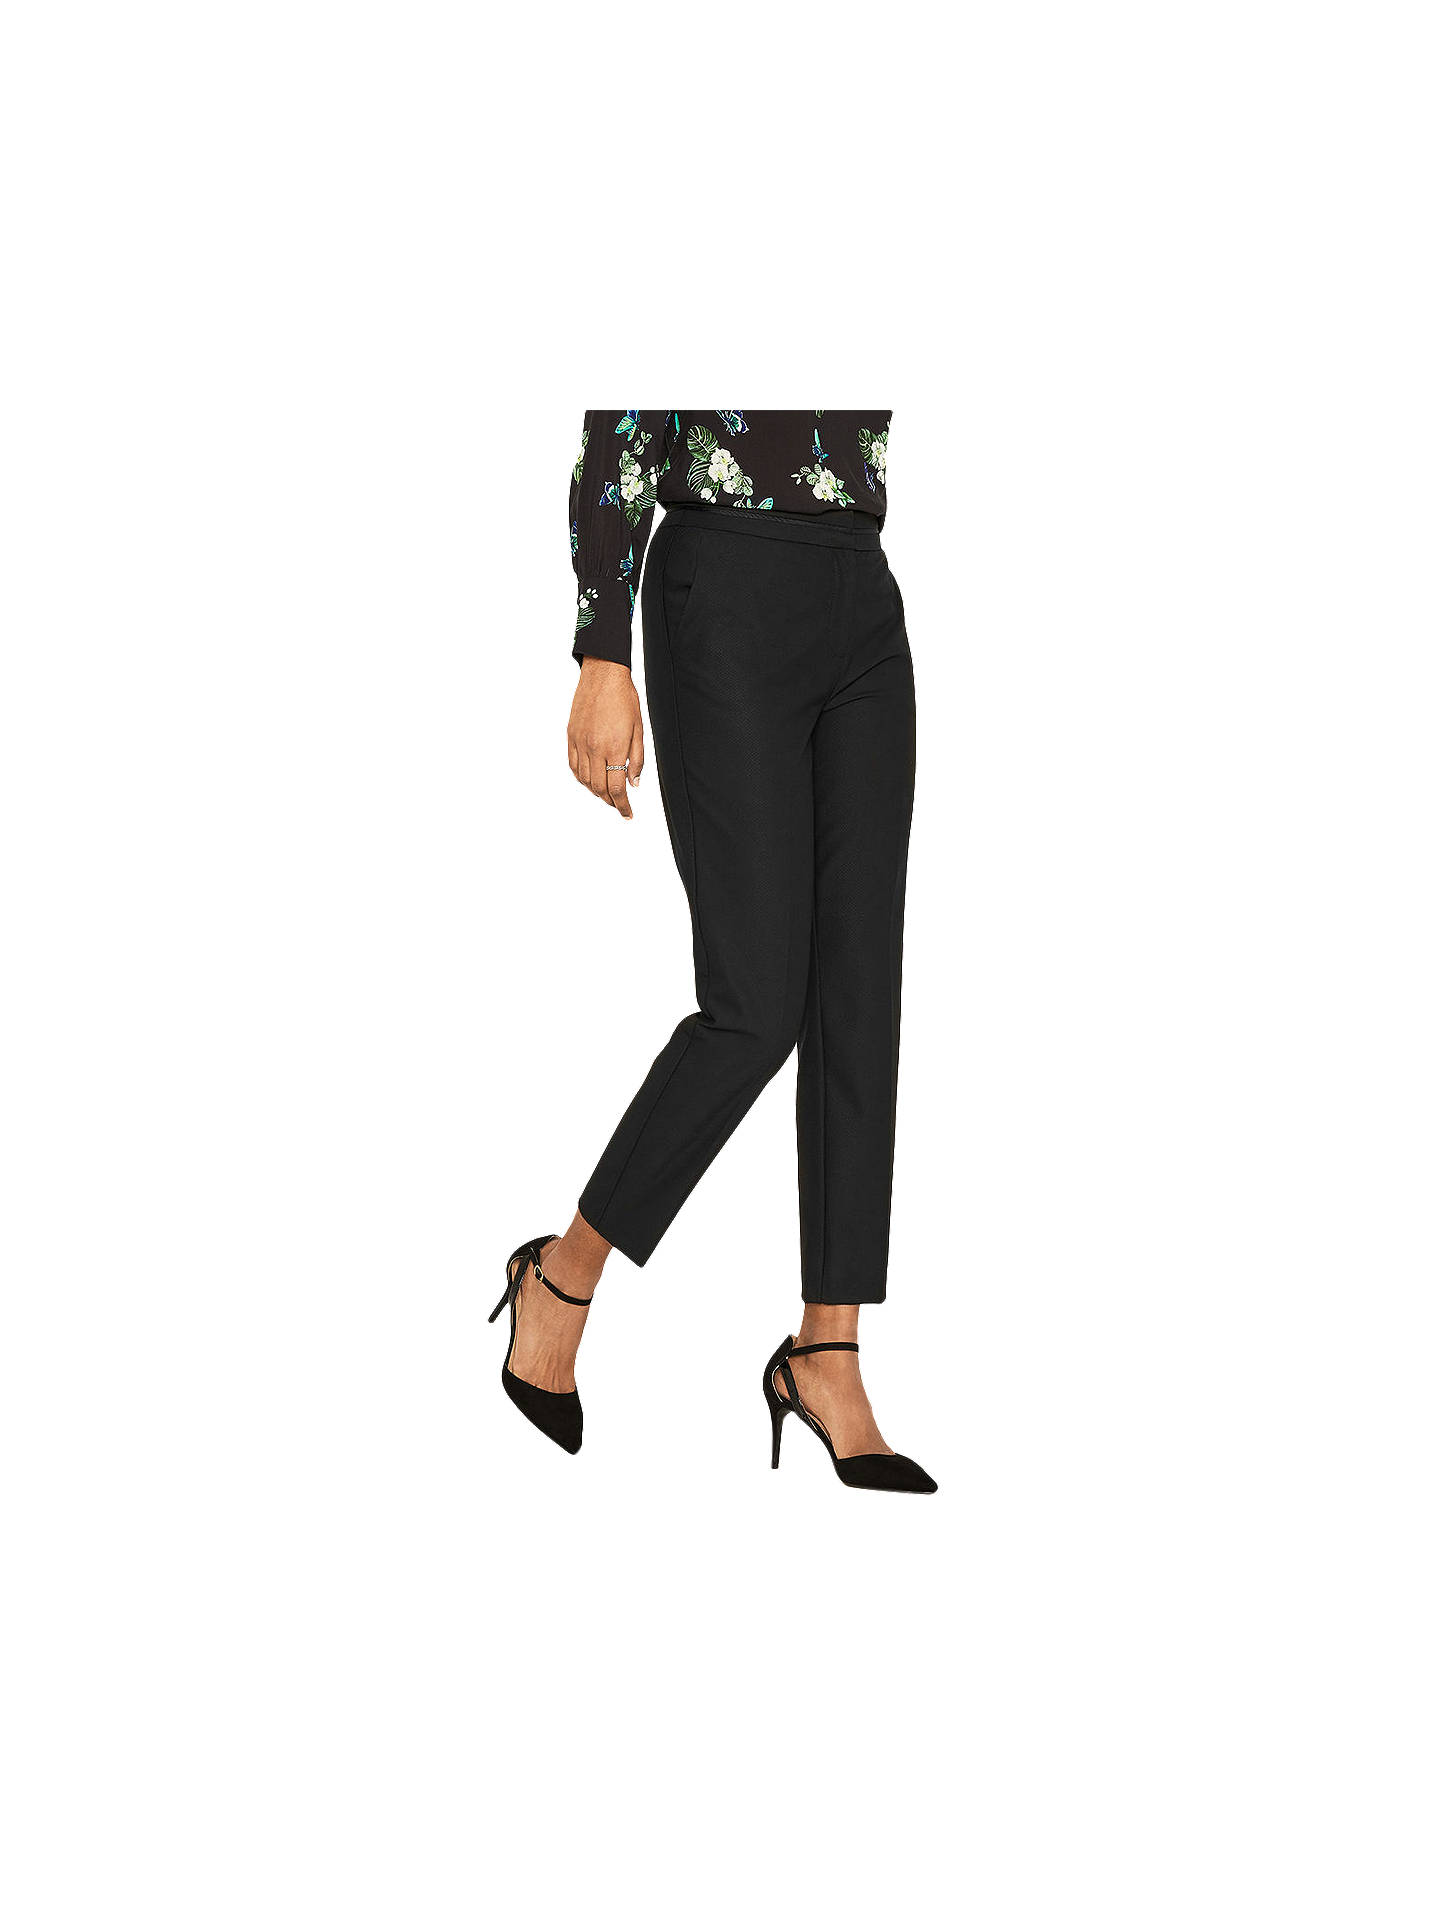 405a812b7ff2 Buy Oasis Camilla Split Detail Trousers, Black, 6 Online at johnlewis.com  ...